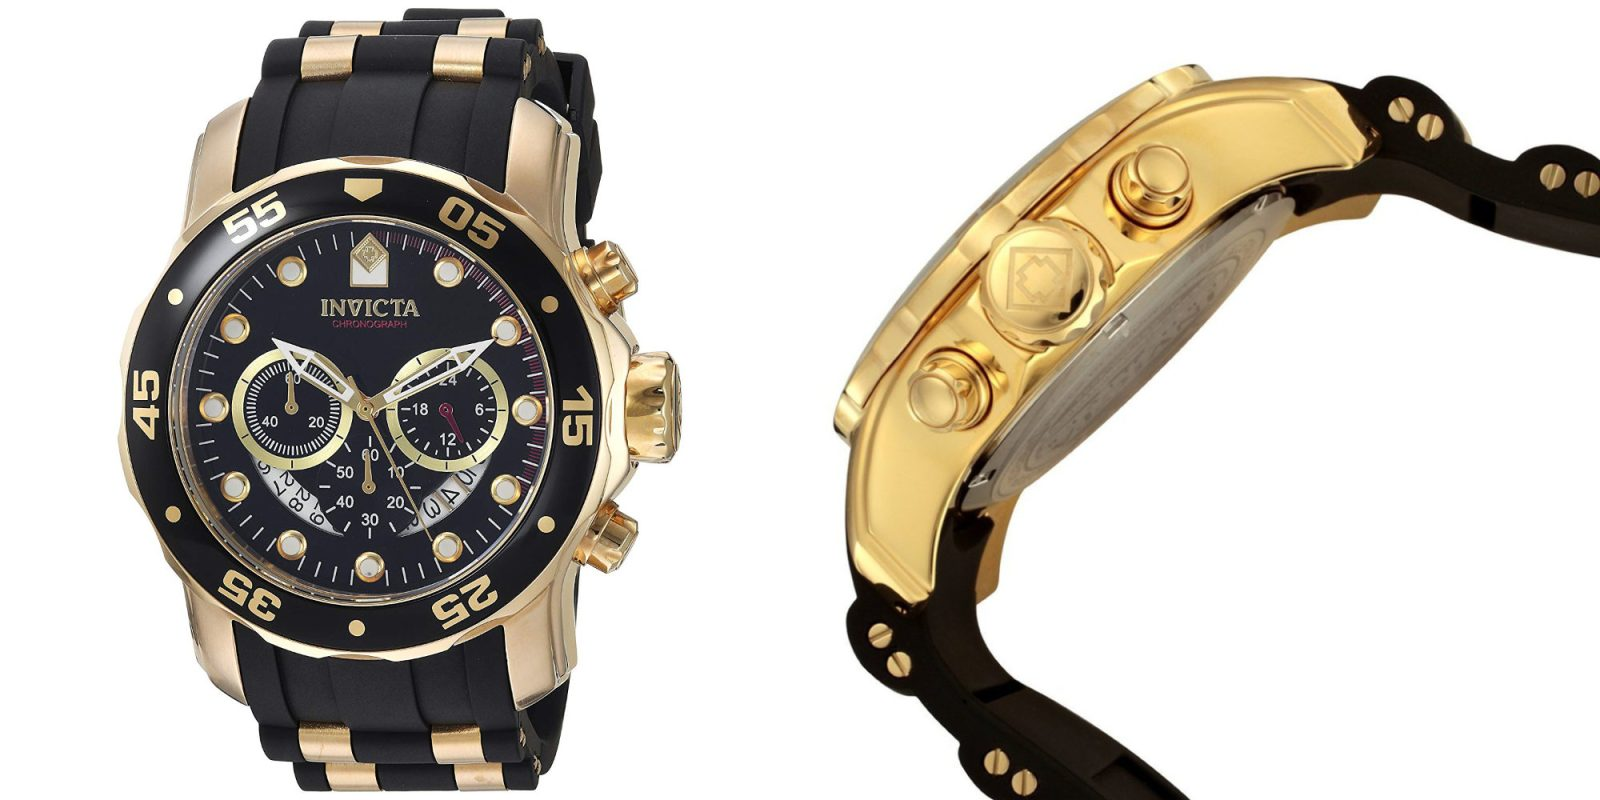 c73bdcb48 Add Invicta's Pro Diver Watch to your collection for $62 shipped (Over 30%  off)